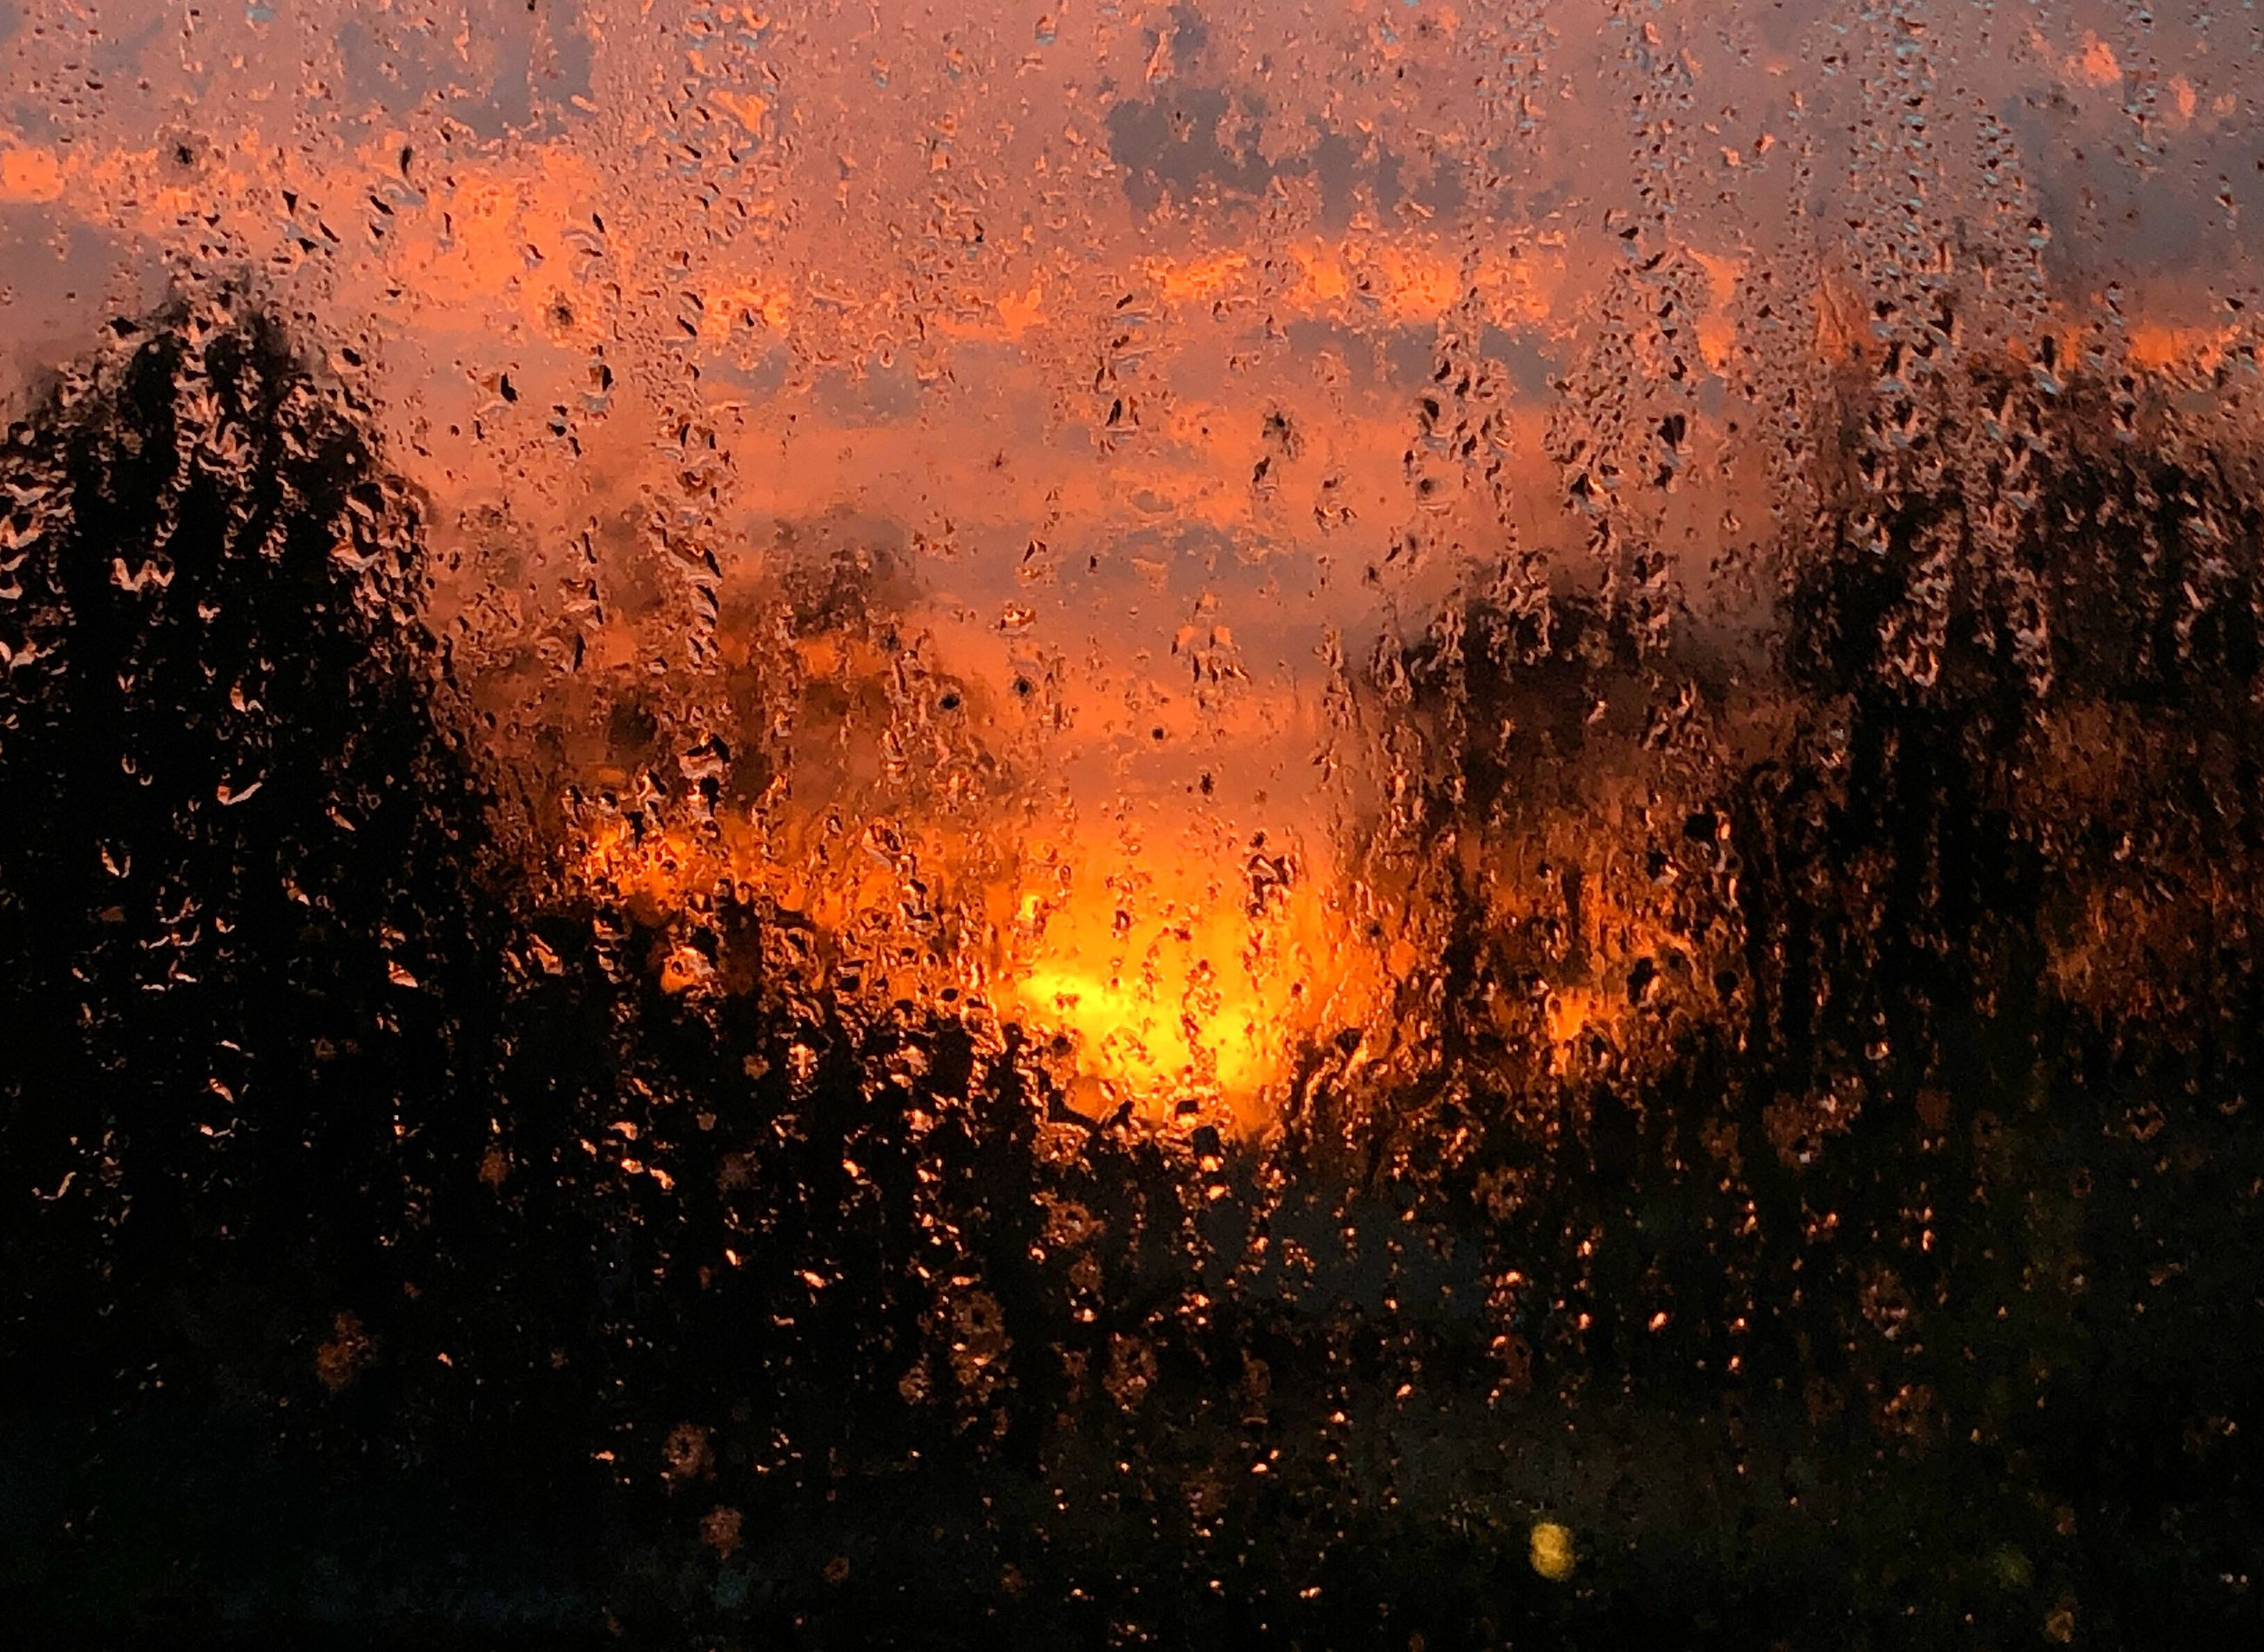 wet, rain, drop, water, orange color, no people, window, nature, sunset, glass - material, full frame, transparent, backgrounds, close-up, outdoors, rainy season, monsoon, raindrop, glass